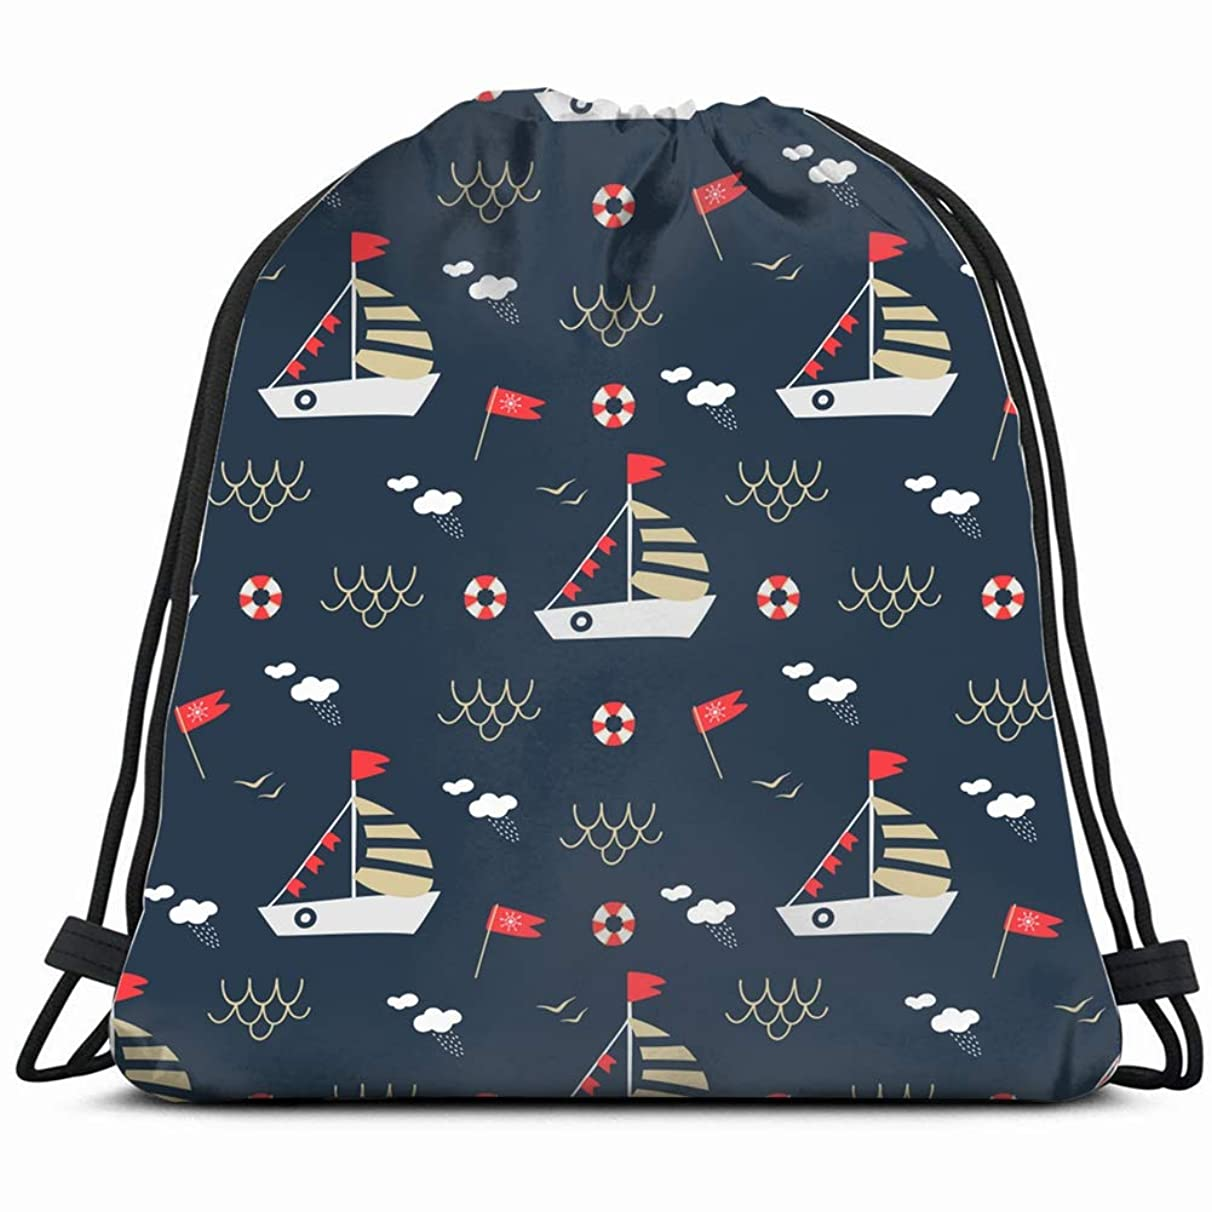 seamless pattern nautical style sailboat backgrounds textures anchor vintage Drawstring Backpack Gym Spacious Pull String Backpack Multifunctional storage bag 14.2 x 16.9 inch